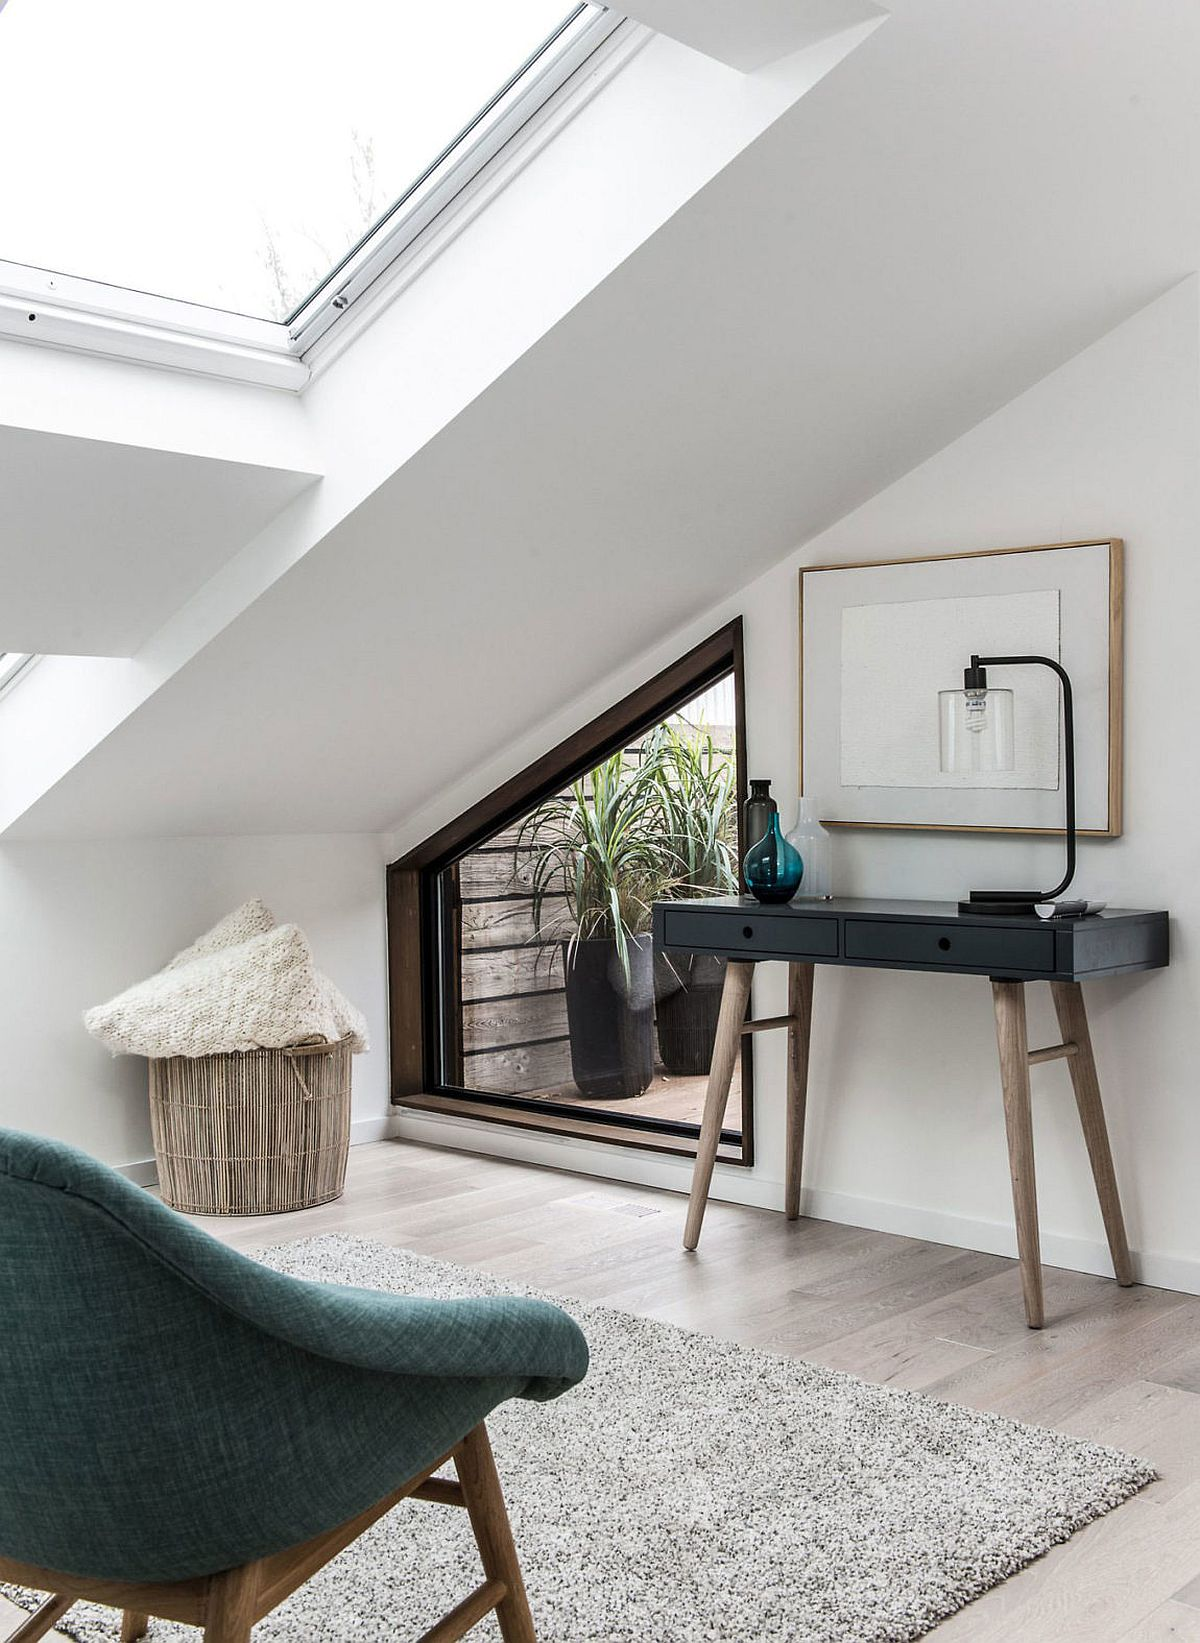 Slanted-bedroom-ceiling-with-skylight